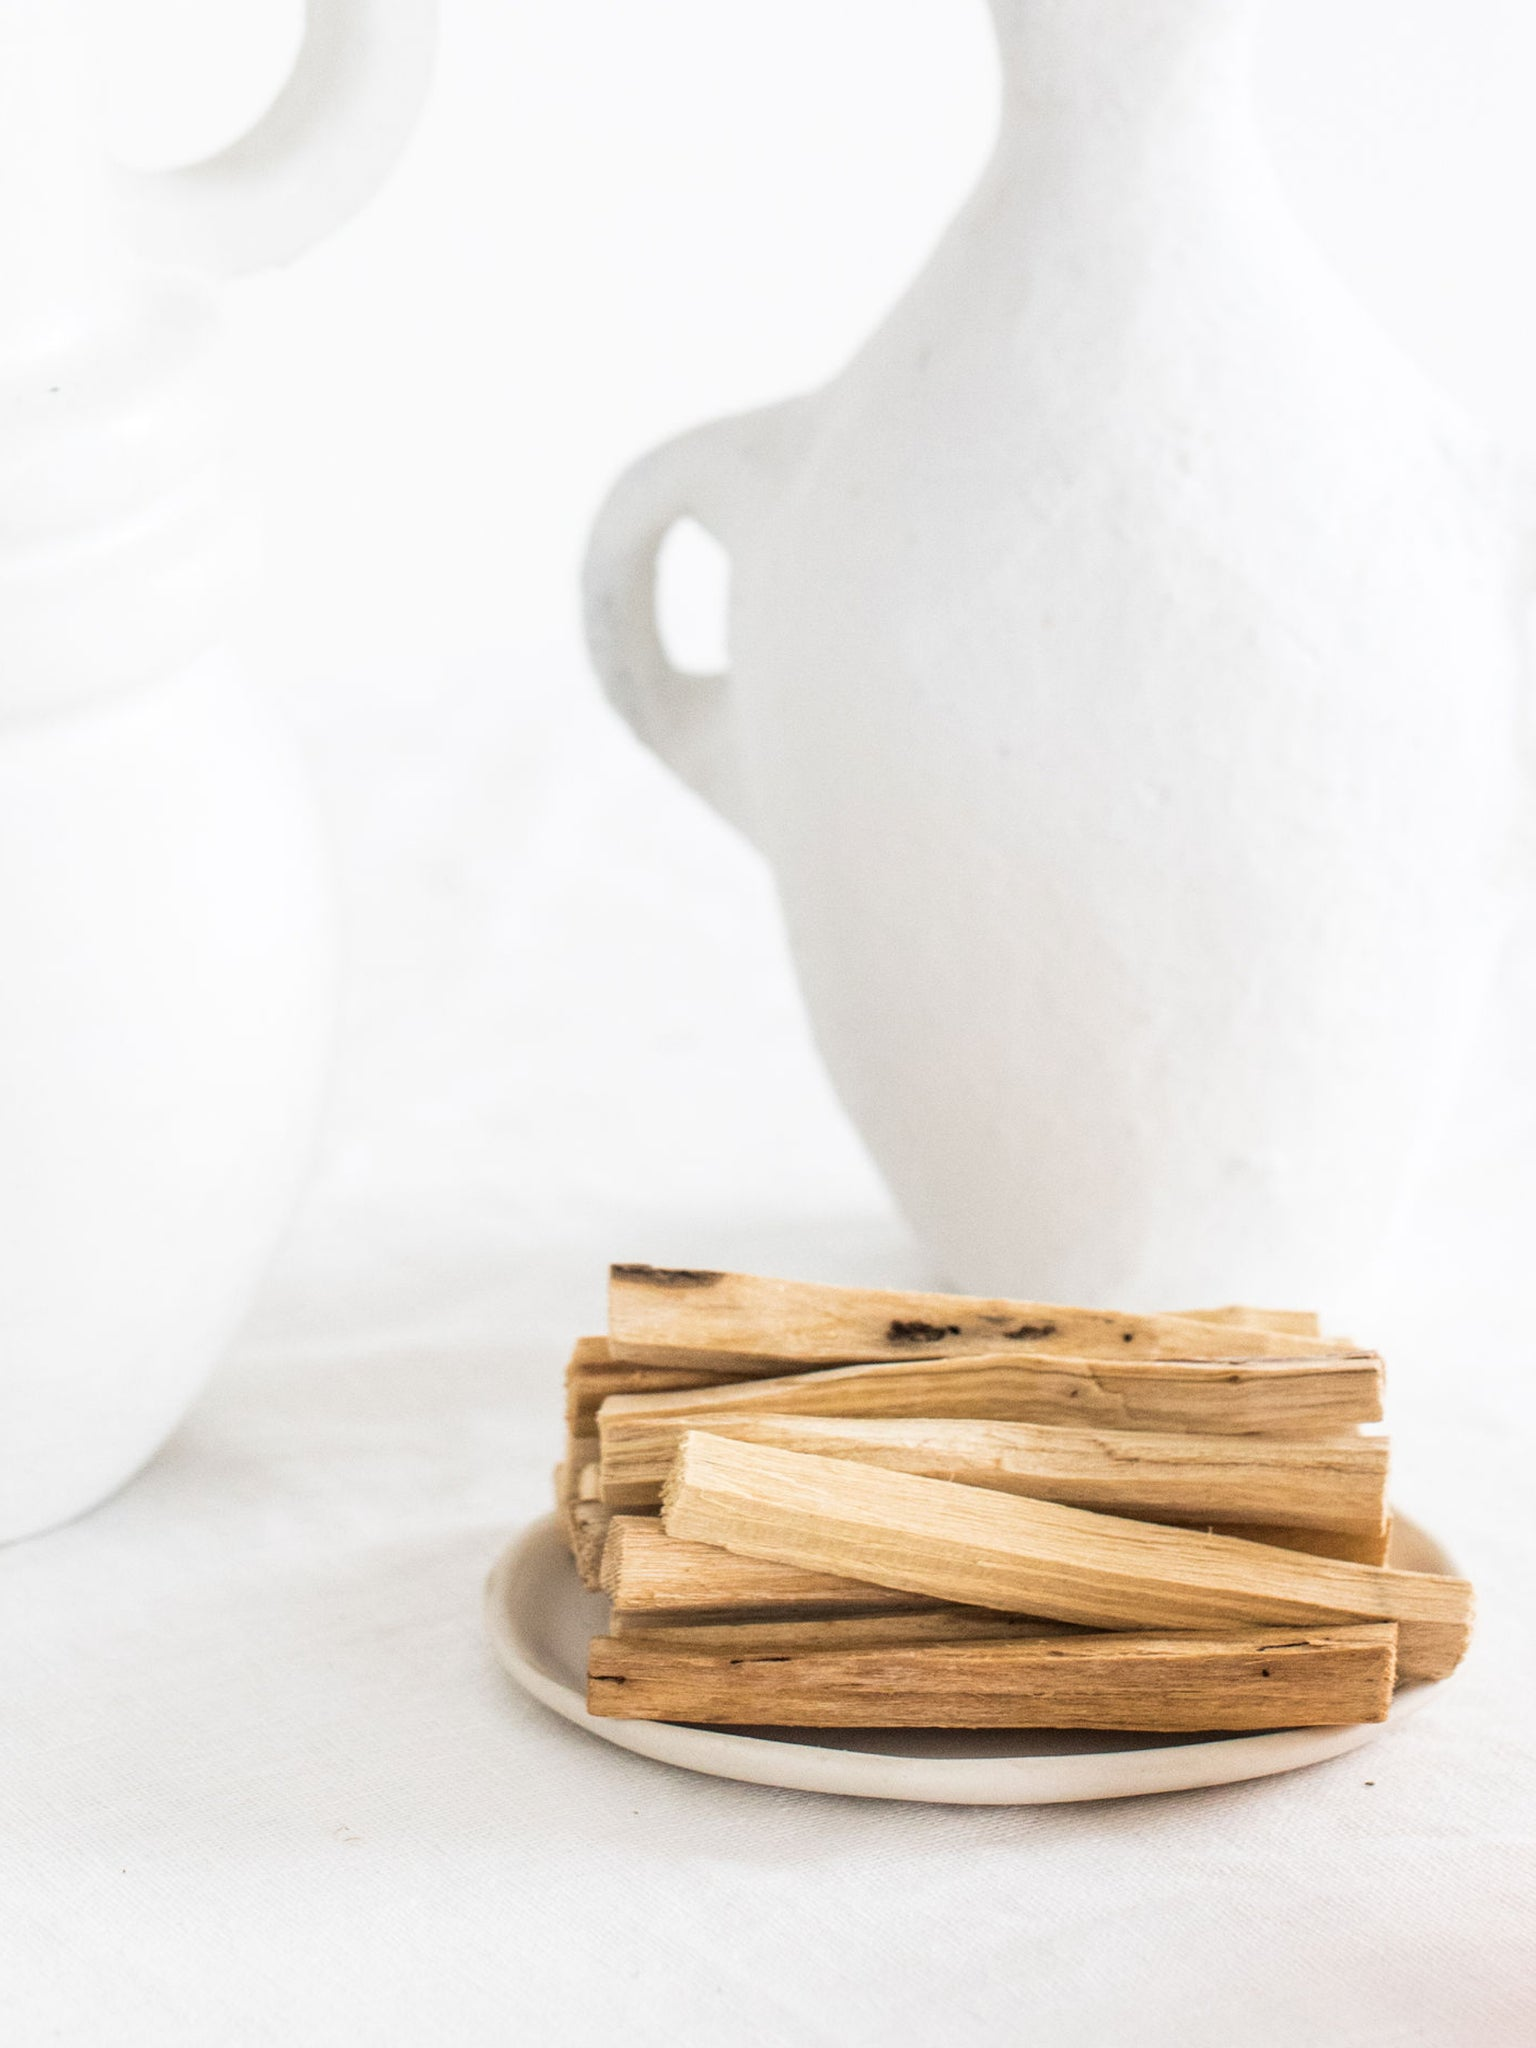 How to use Palo Santo